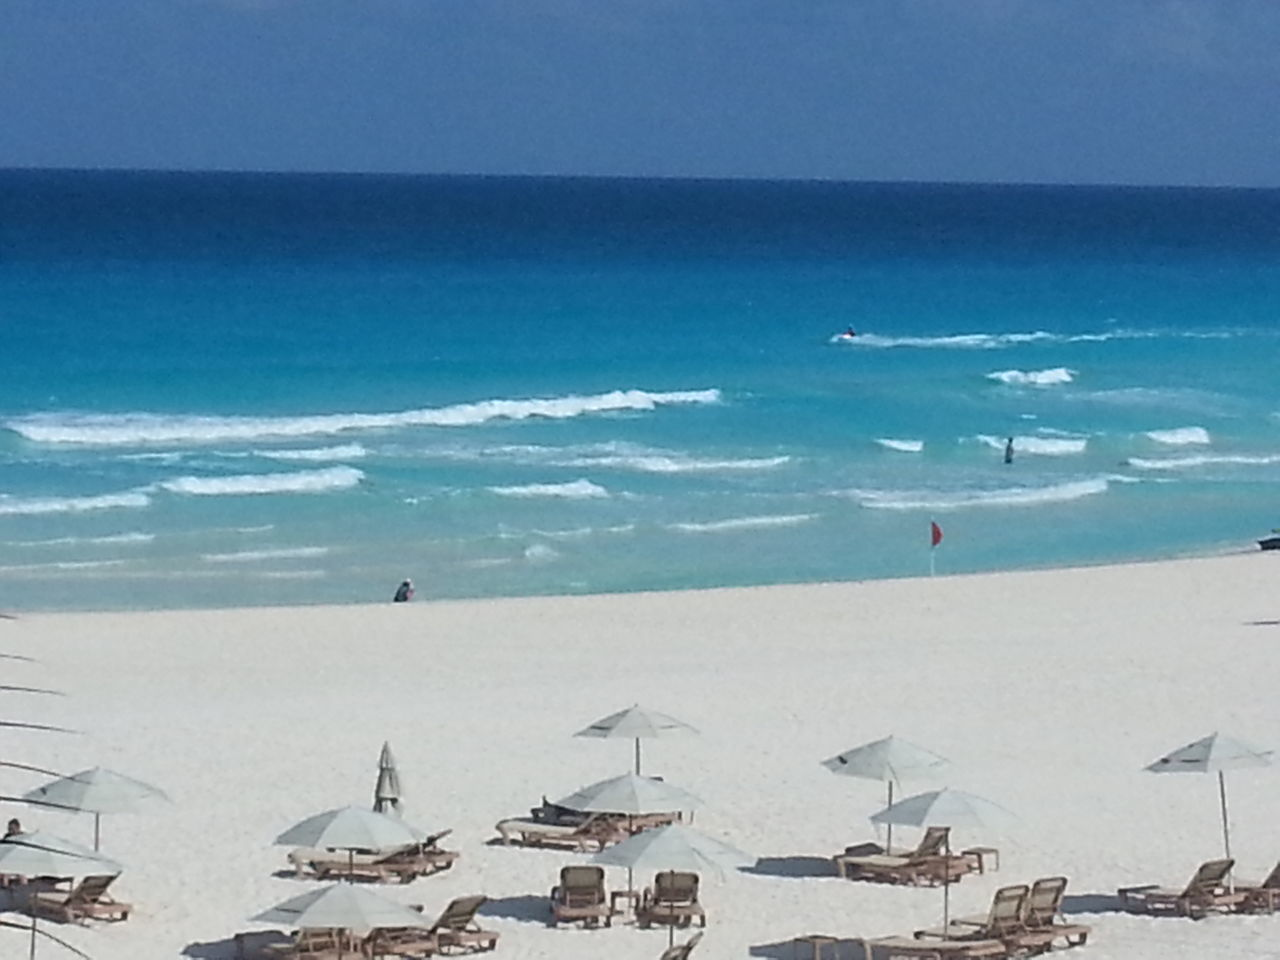 Wish I was here now Sea Beach Flying Vacations Sand Horizon Over Water Water Outdoors Airplane Aerial View Nautical Vessel Scenics Beauty In Nature Day Nature Sky No People Lifeguard Hut Samsung Galaxy Note 5 Vacation Destination CancunMexico🌙